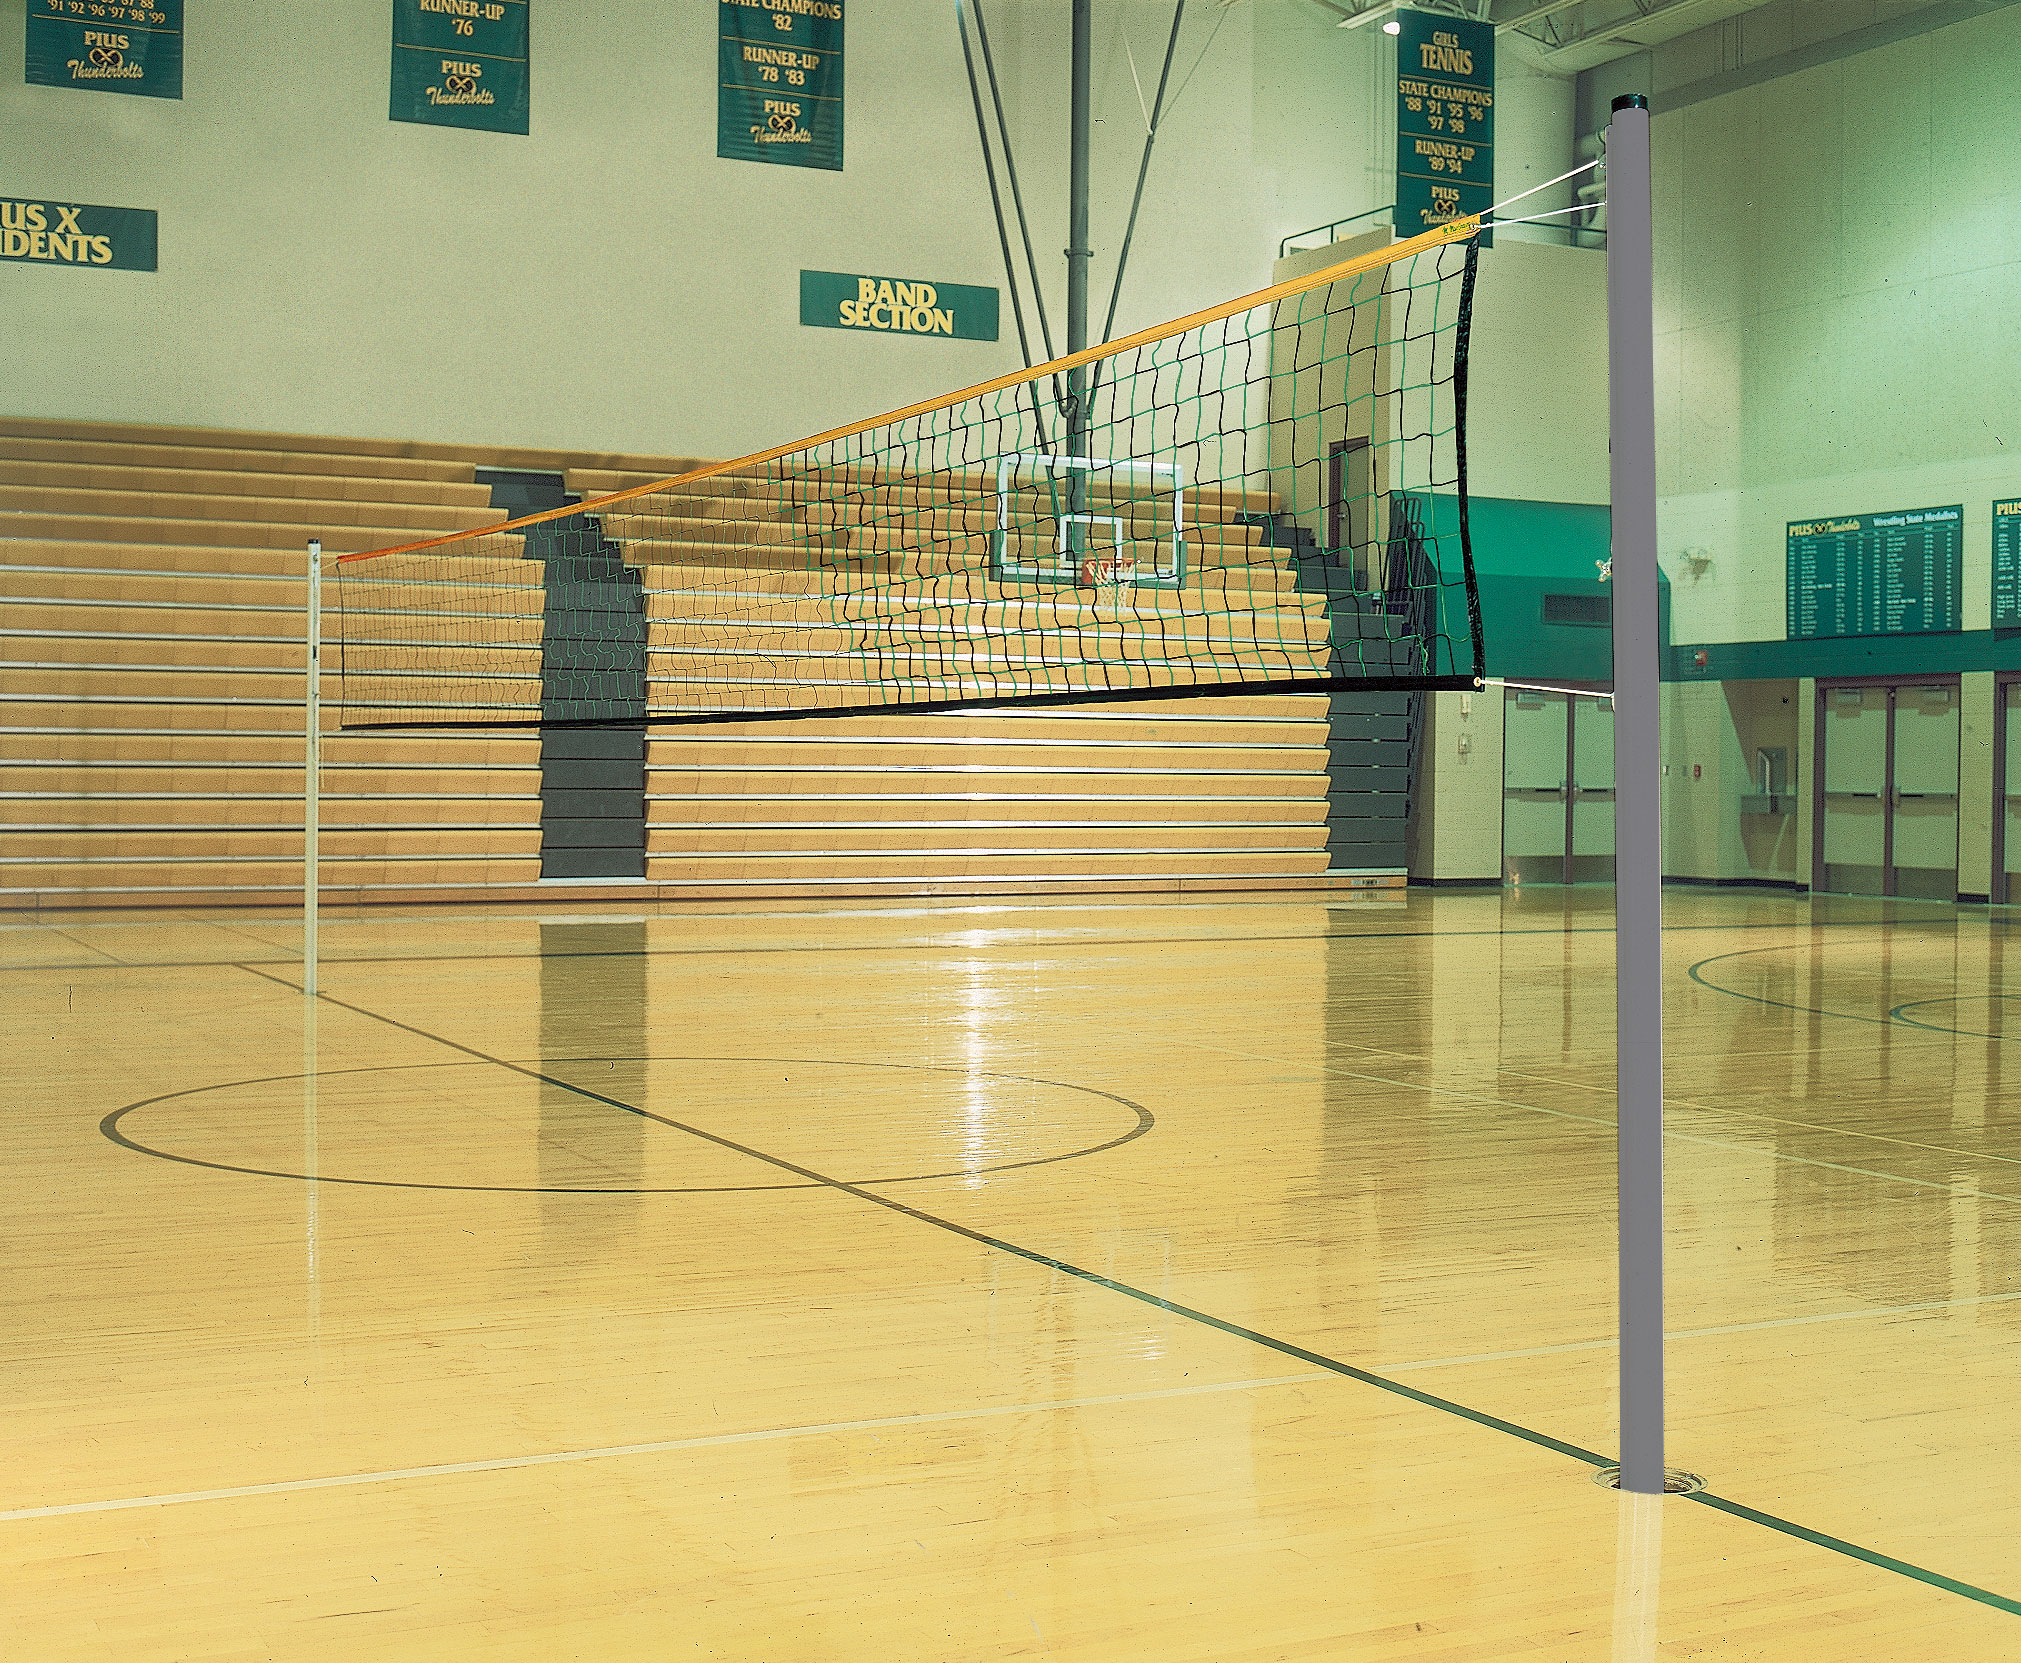 Universal volleyball badminton game standards bison inc for Indoor badminton court height